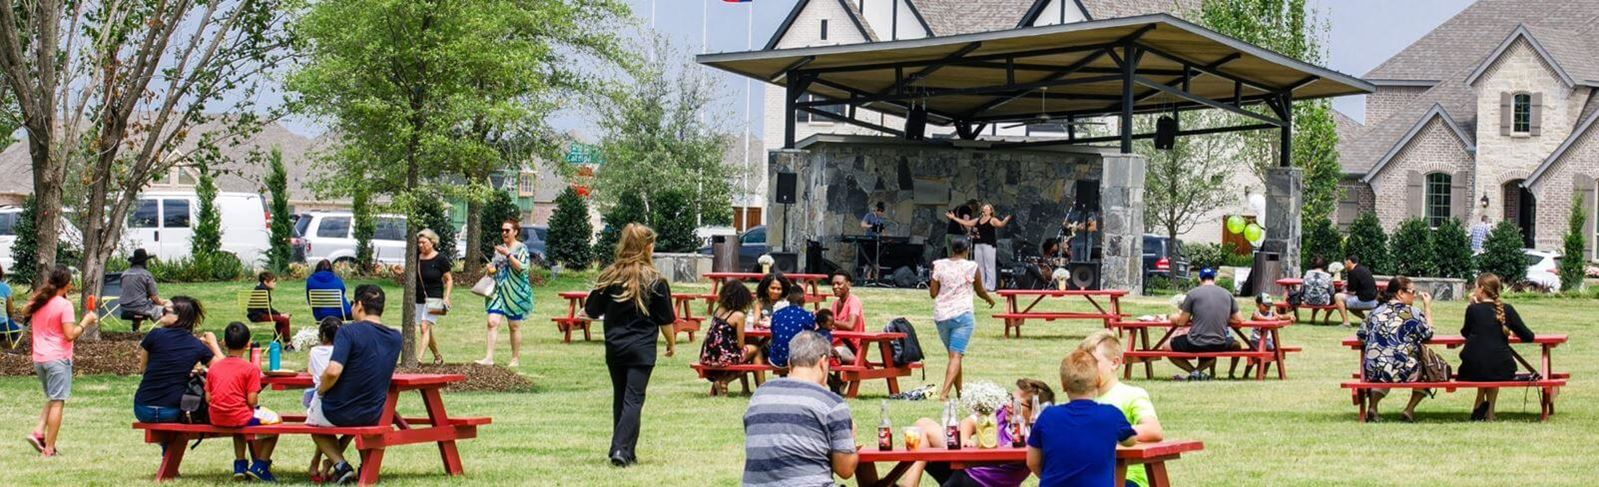 Community Events at The Grove Frisco